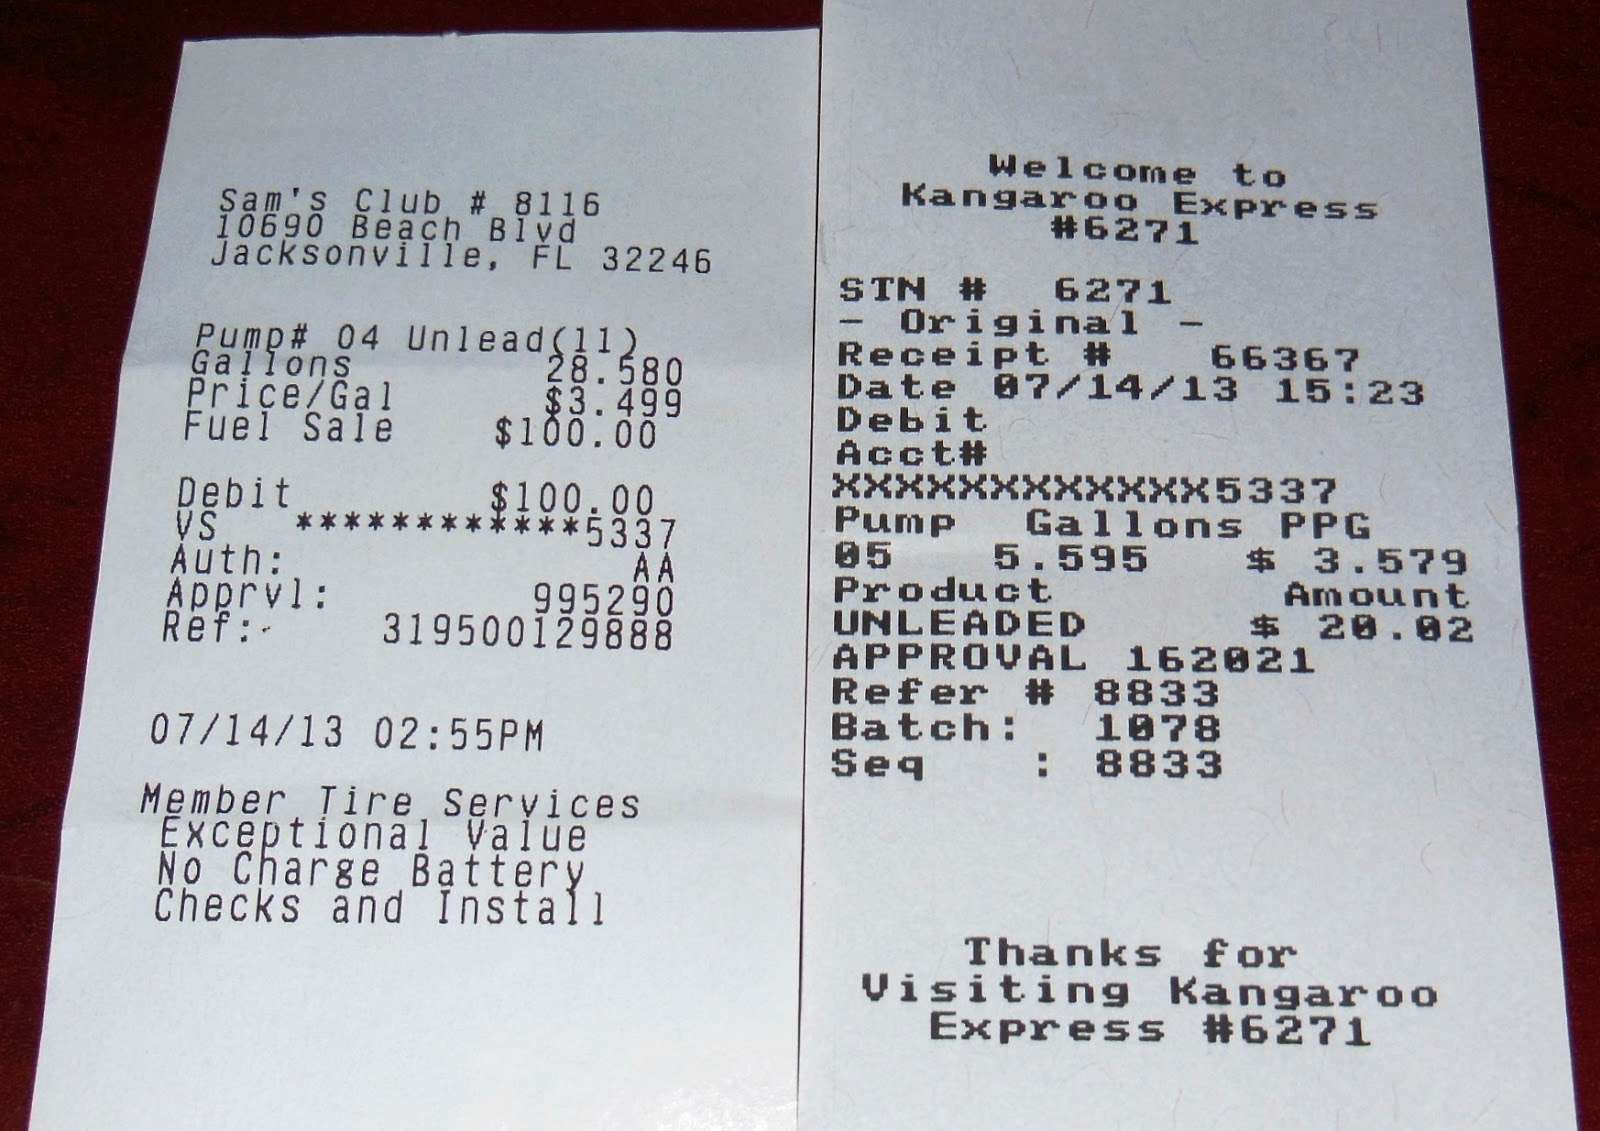 Expressexpense Custom Receipt Maker Amp Online Receipt